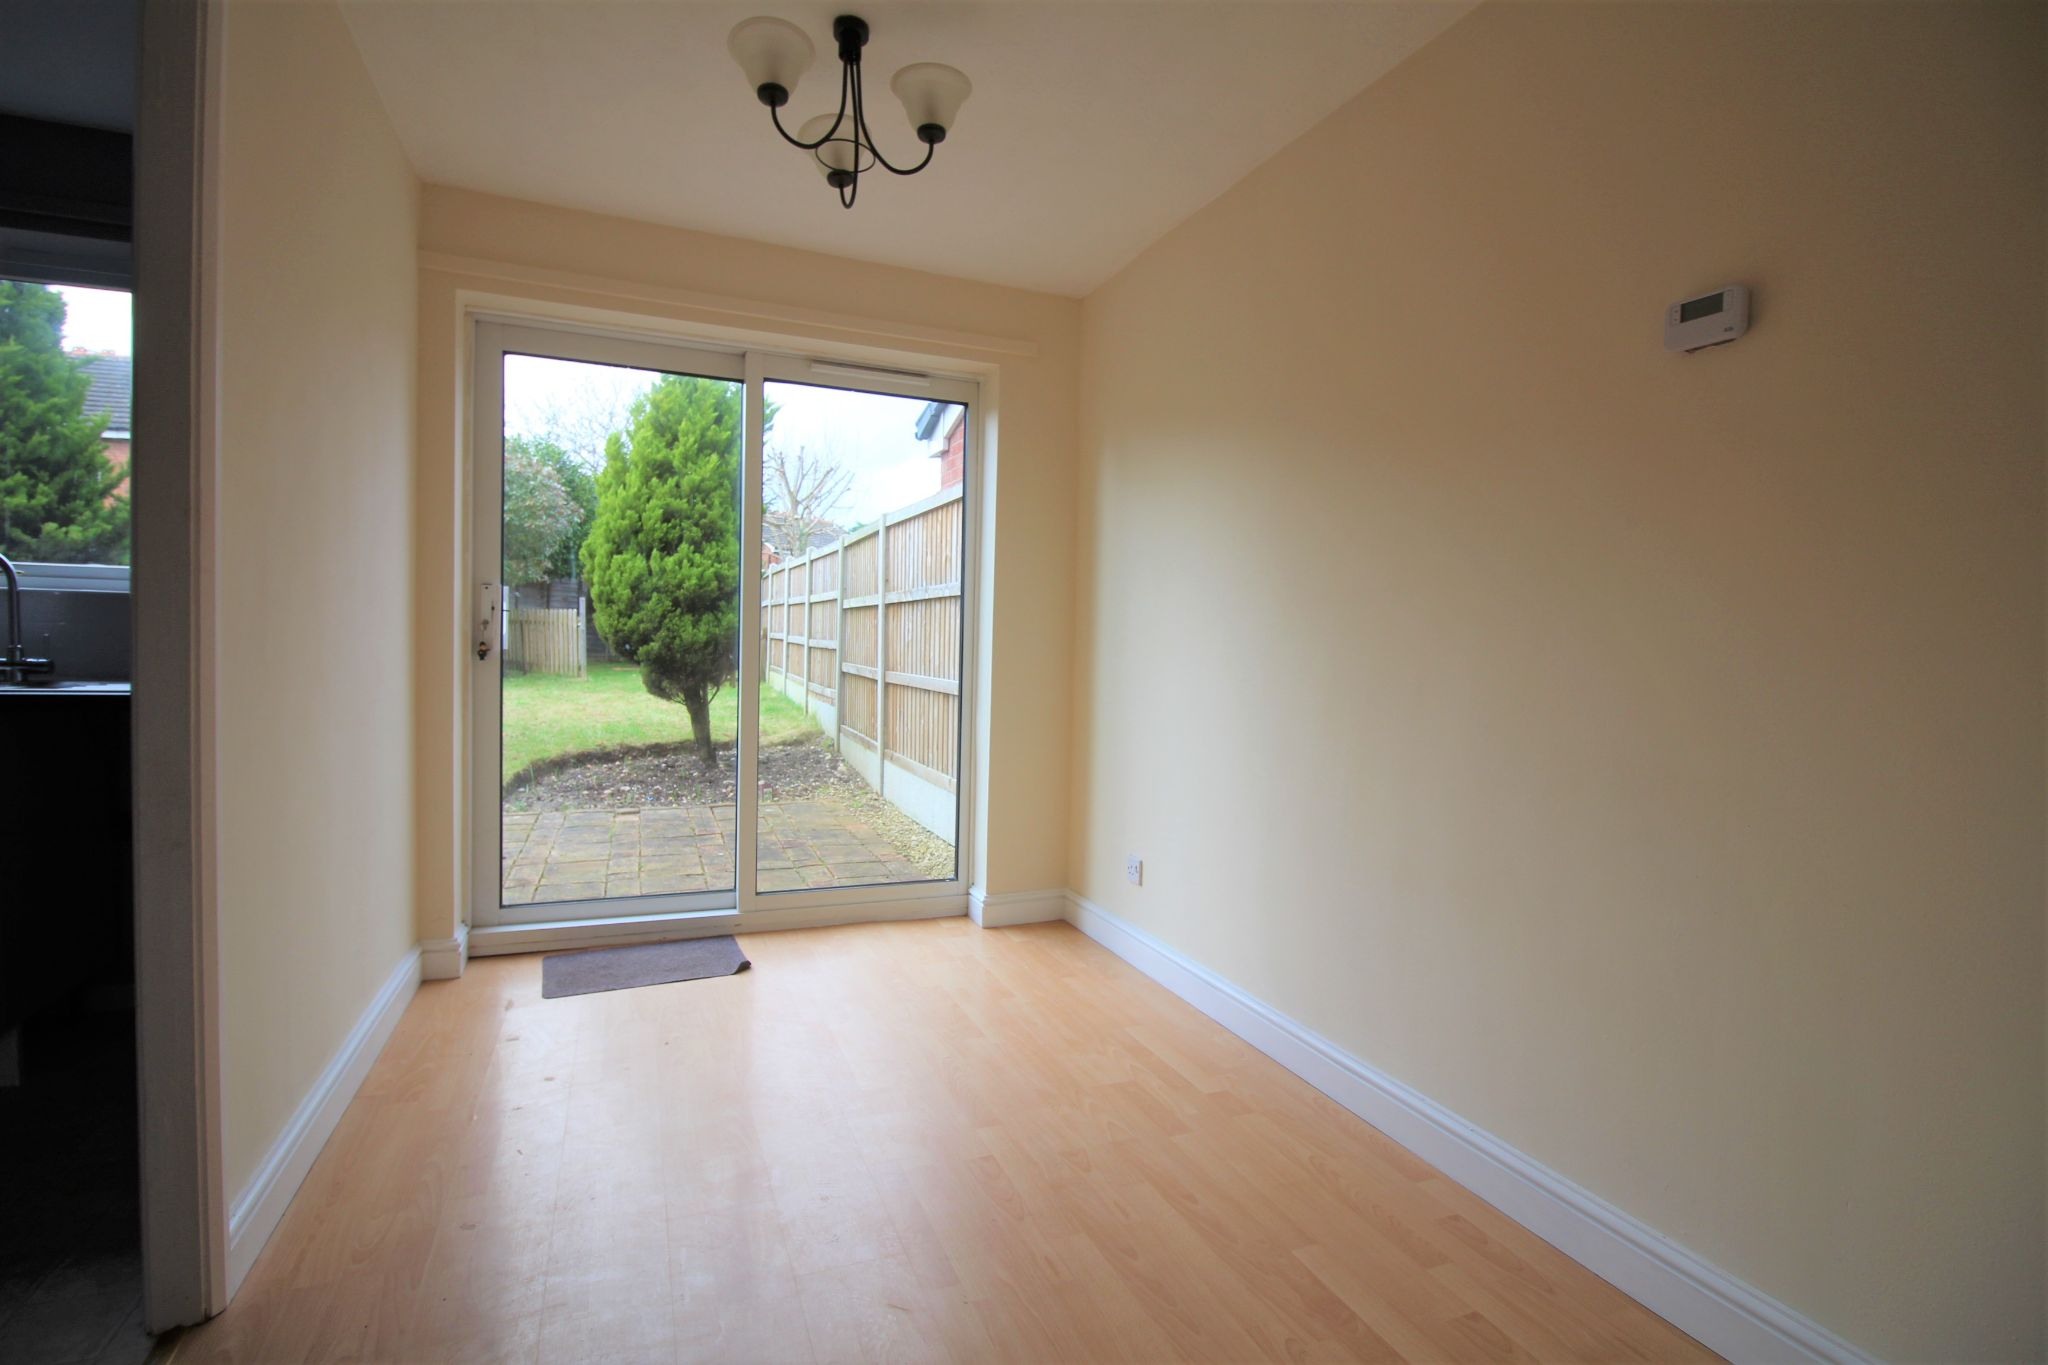 3 bedroom semi-detached house Let Agreed in Solihull - Photograph 6.